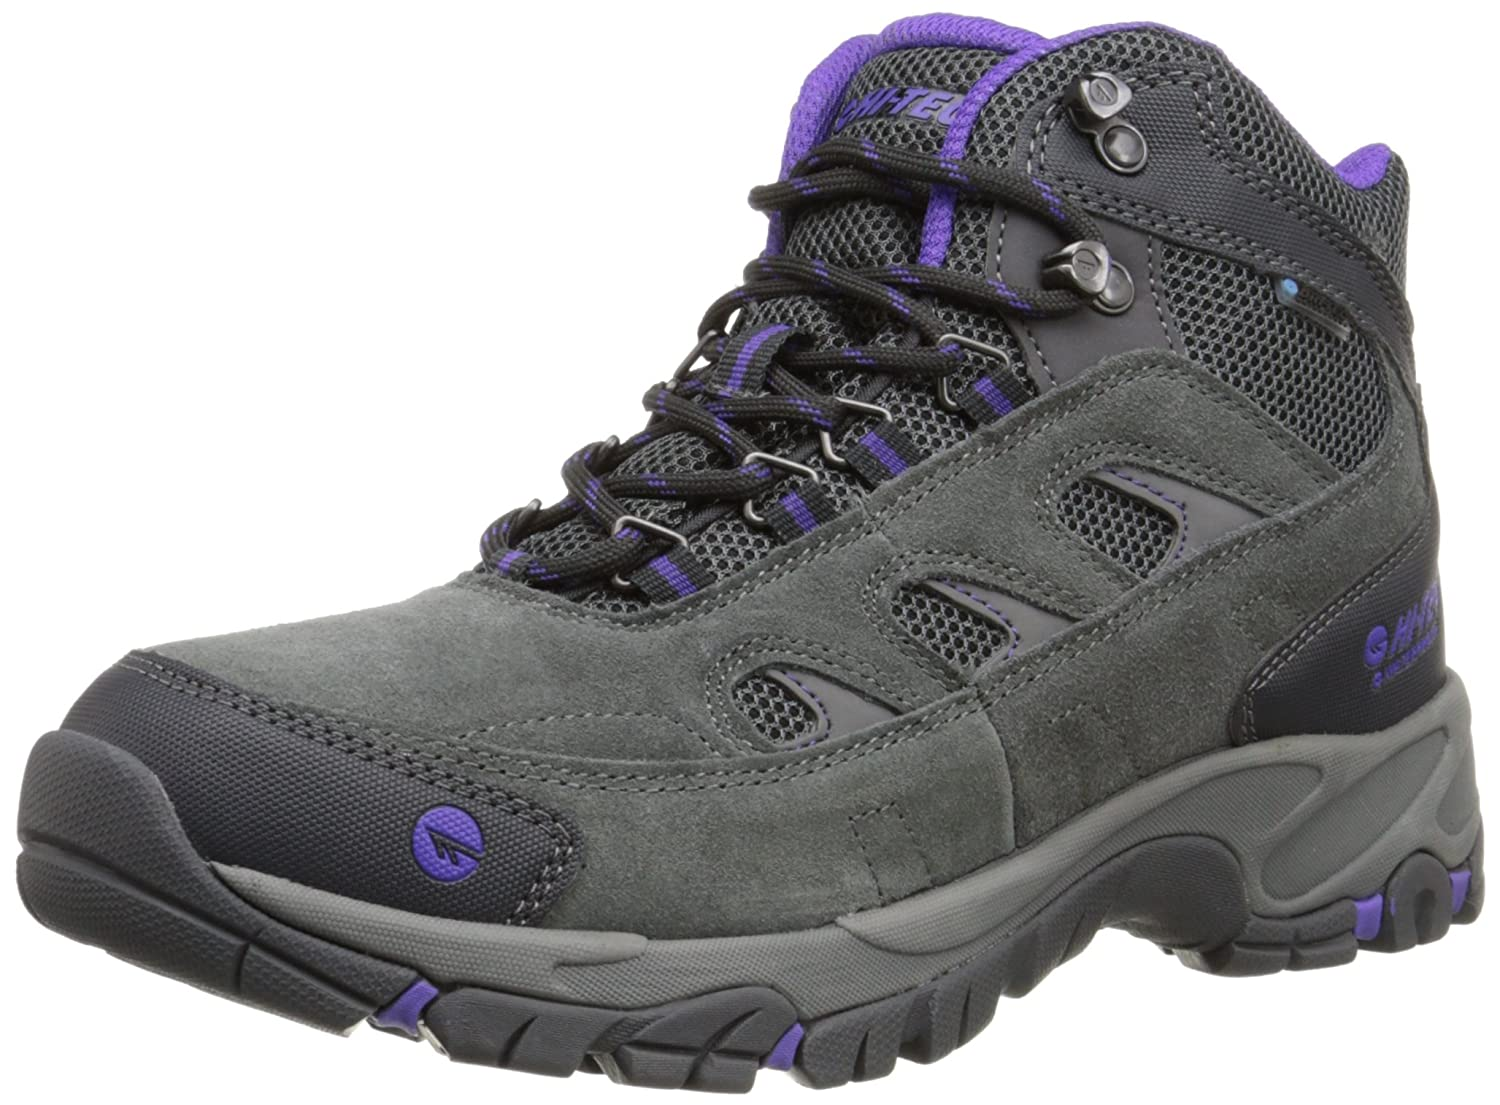 Charcoal Purple Hi-Tec Women's Wn Logan Mid Waterproof Hiking Boot